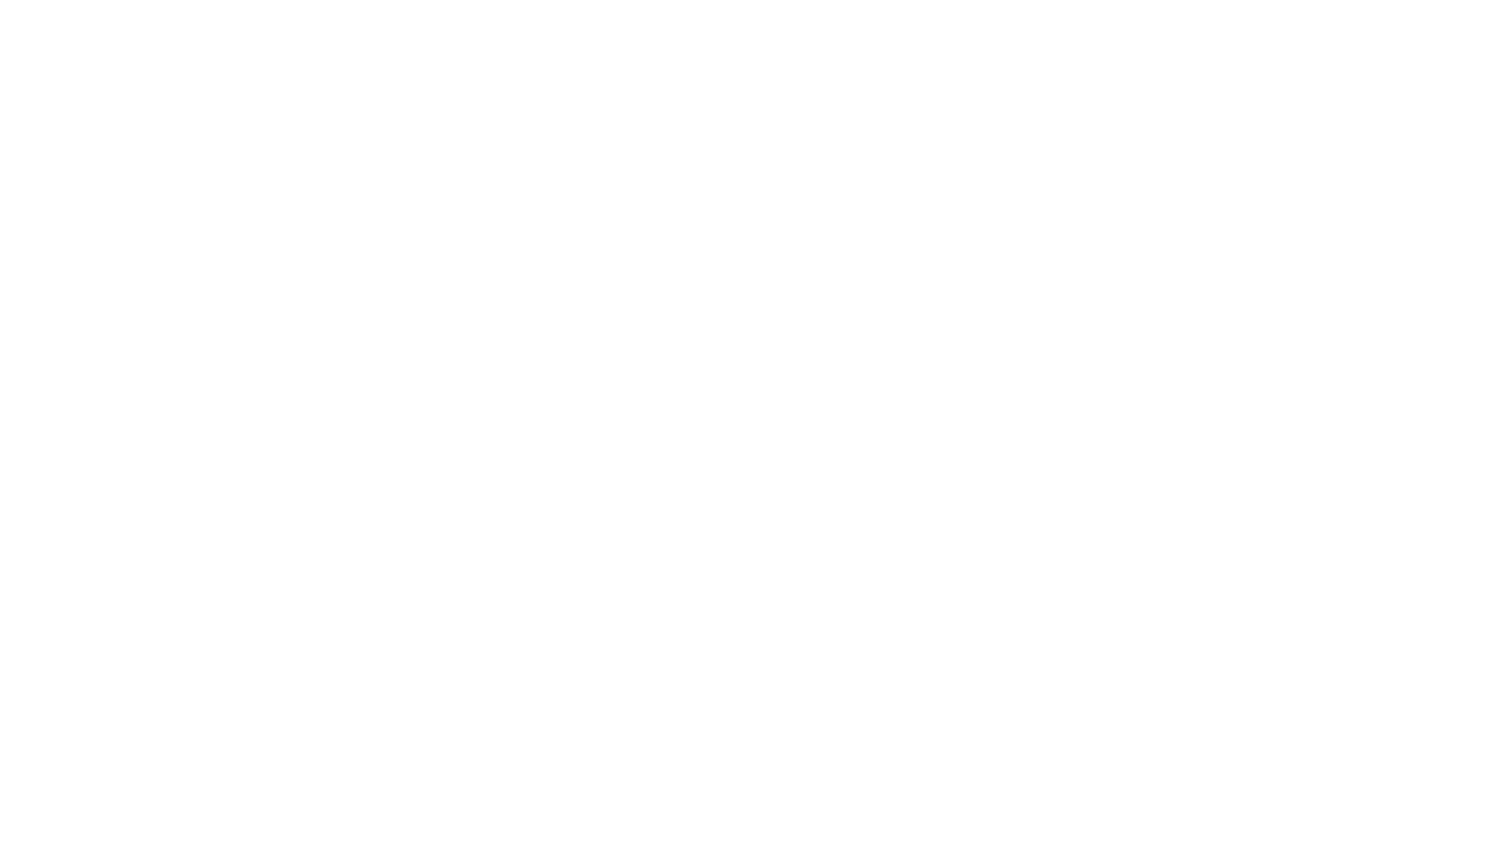 The Kelly School of Irish Dance